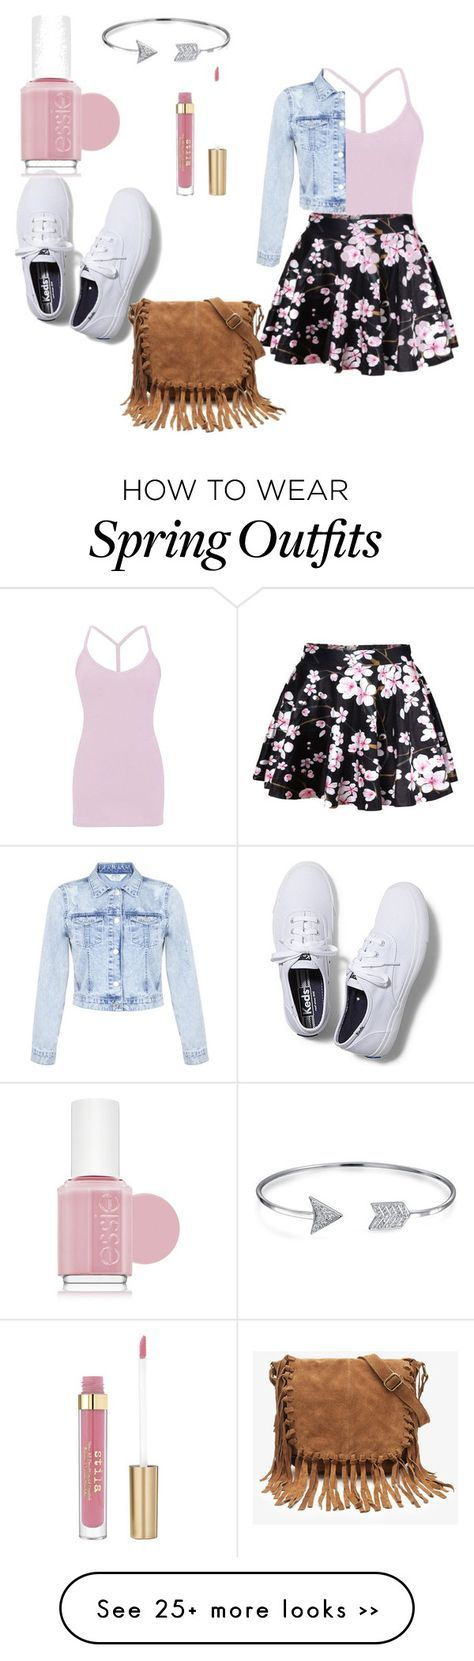 """""""middle school outfit"""" by jadawashington-jw on Polyvore"""